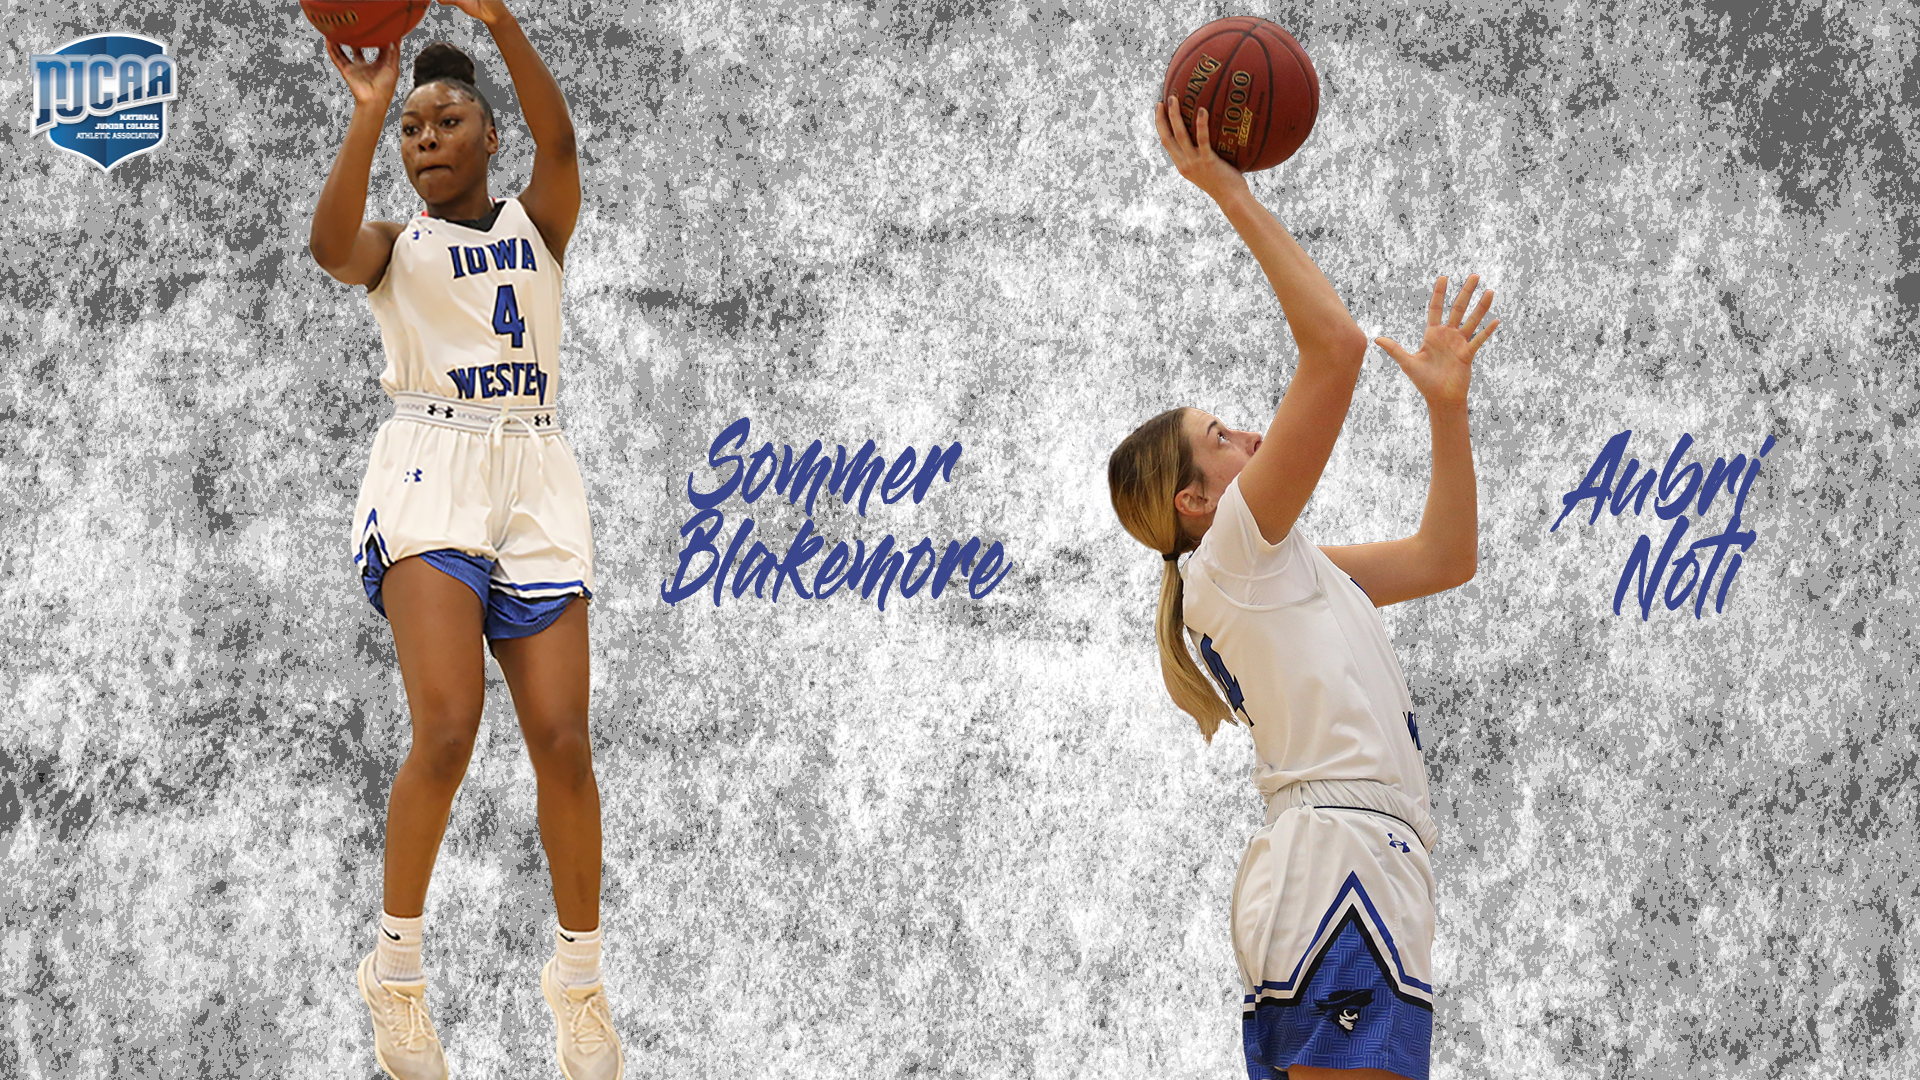 Blakemore and Noti selected for NJCAA All-Star Weekend